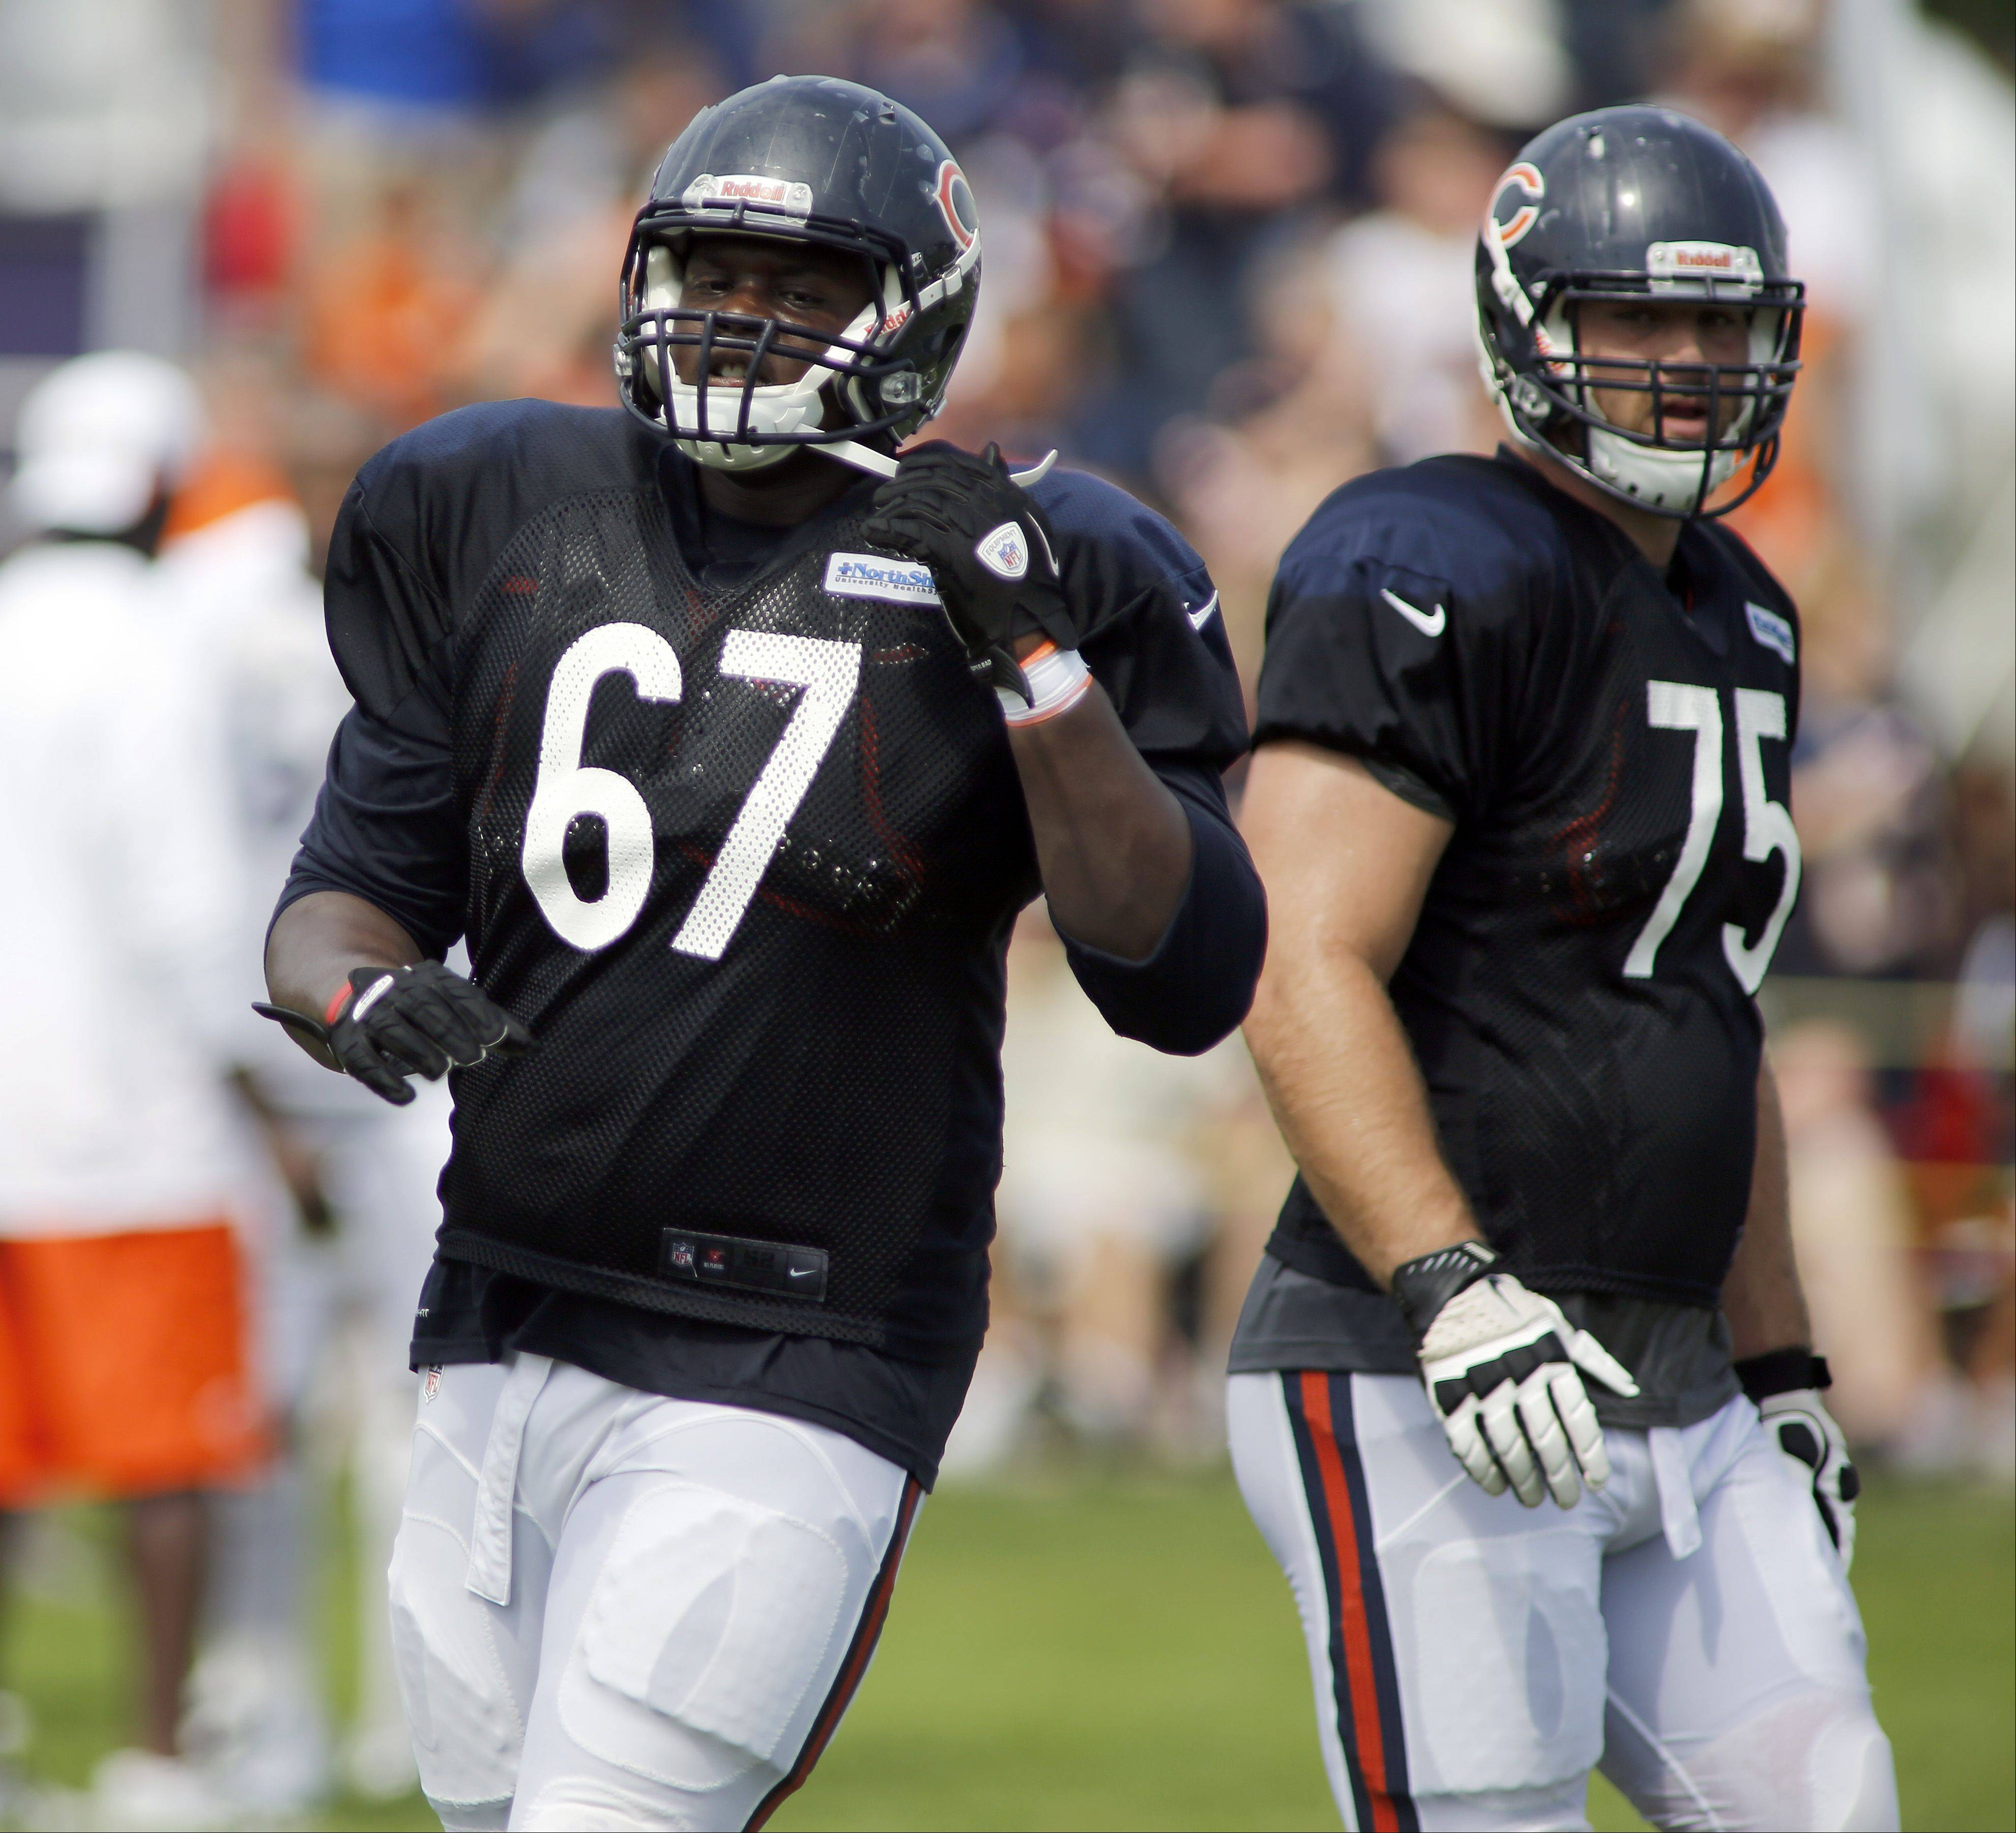 Bears offensive tackle Jordan Mills (67) during training camp on the campus of Olivet Nazarene University in Bourbonnais.